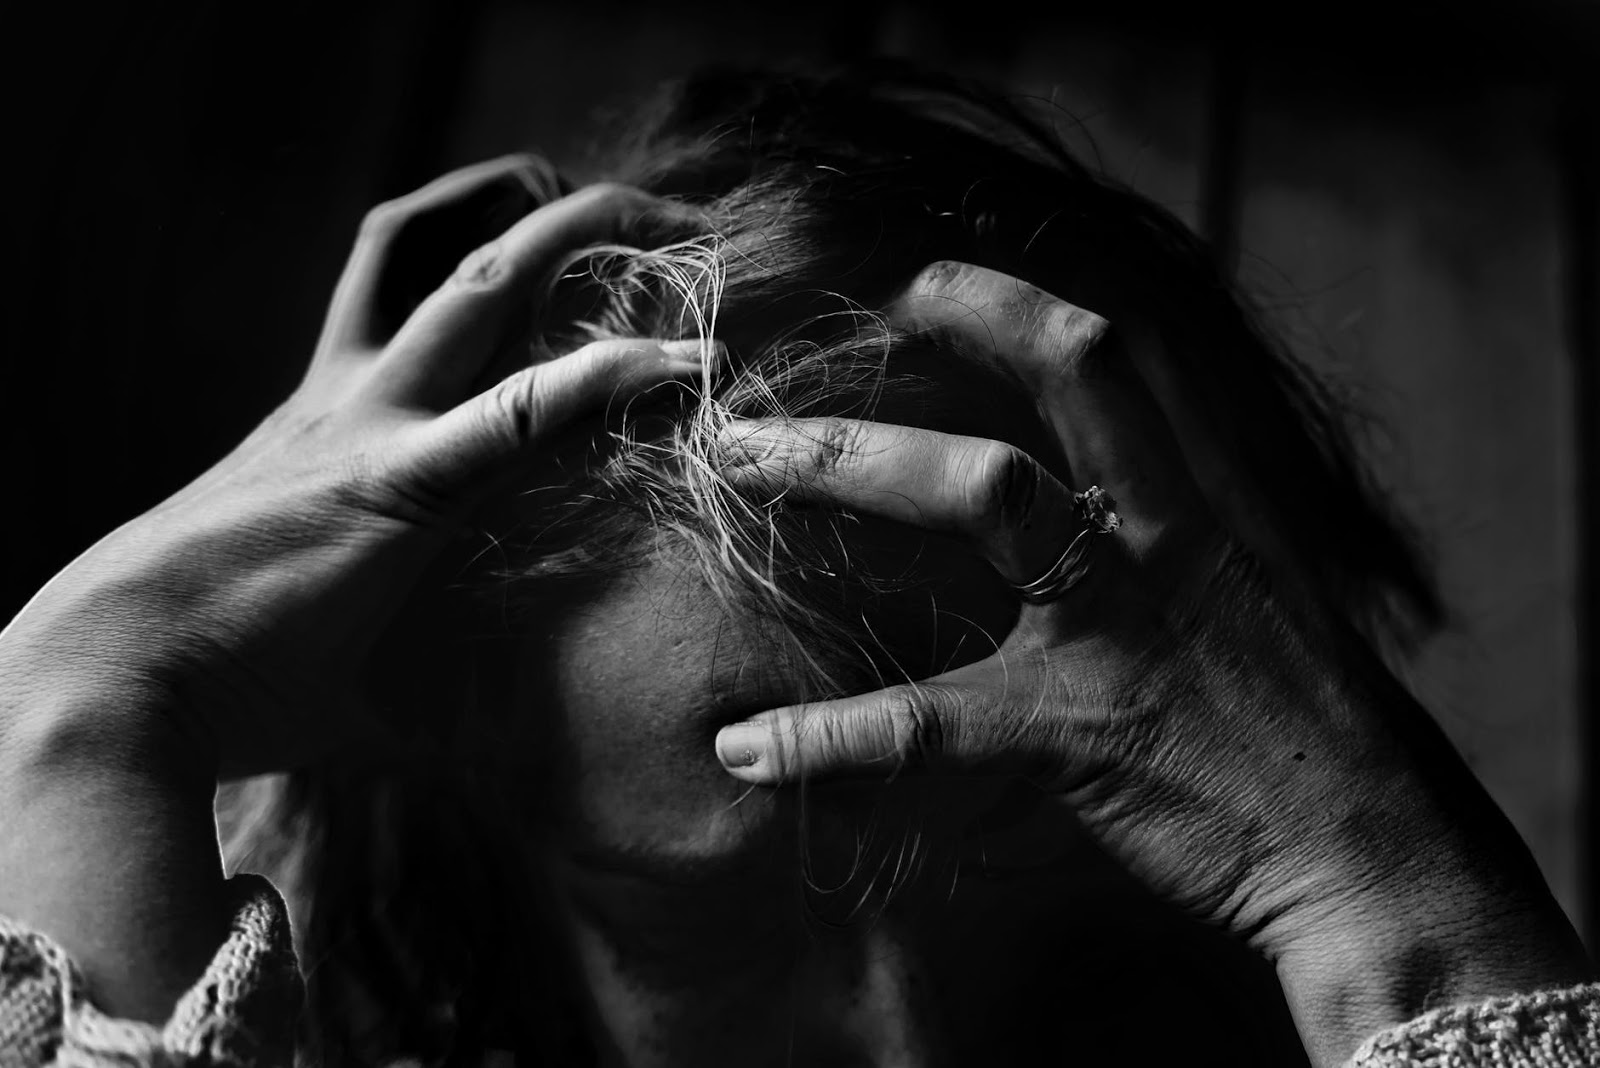 A woman is clutching her head out of frustration from her stressful relationship.